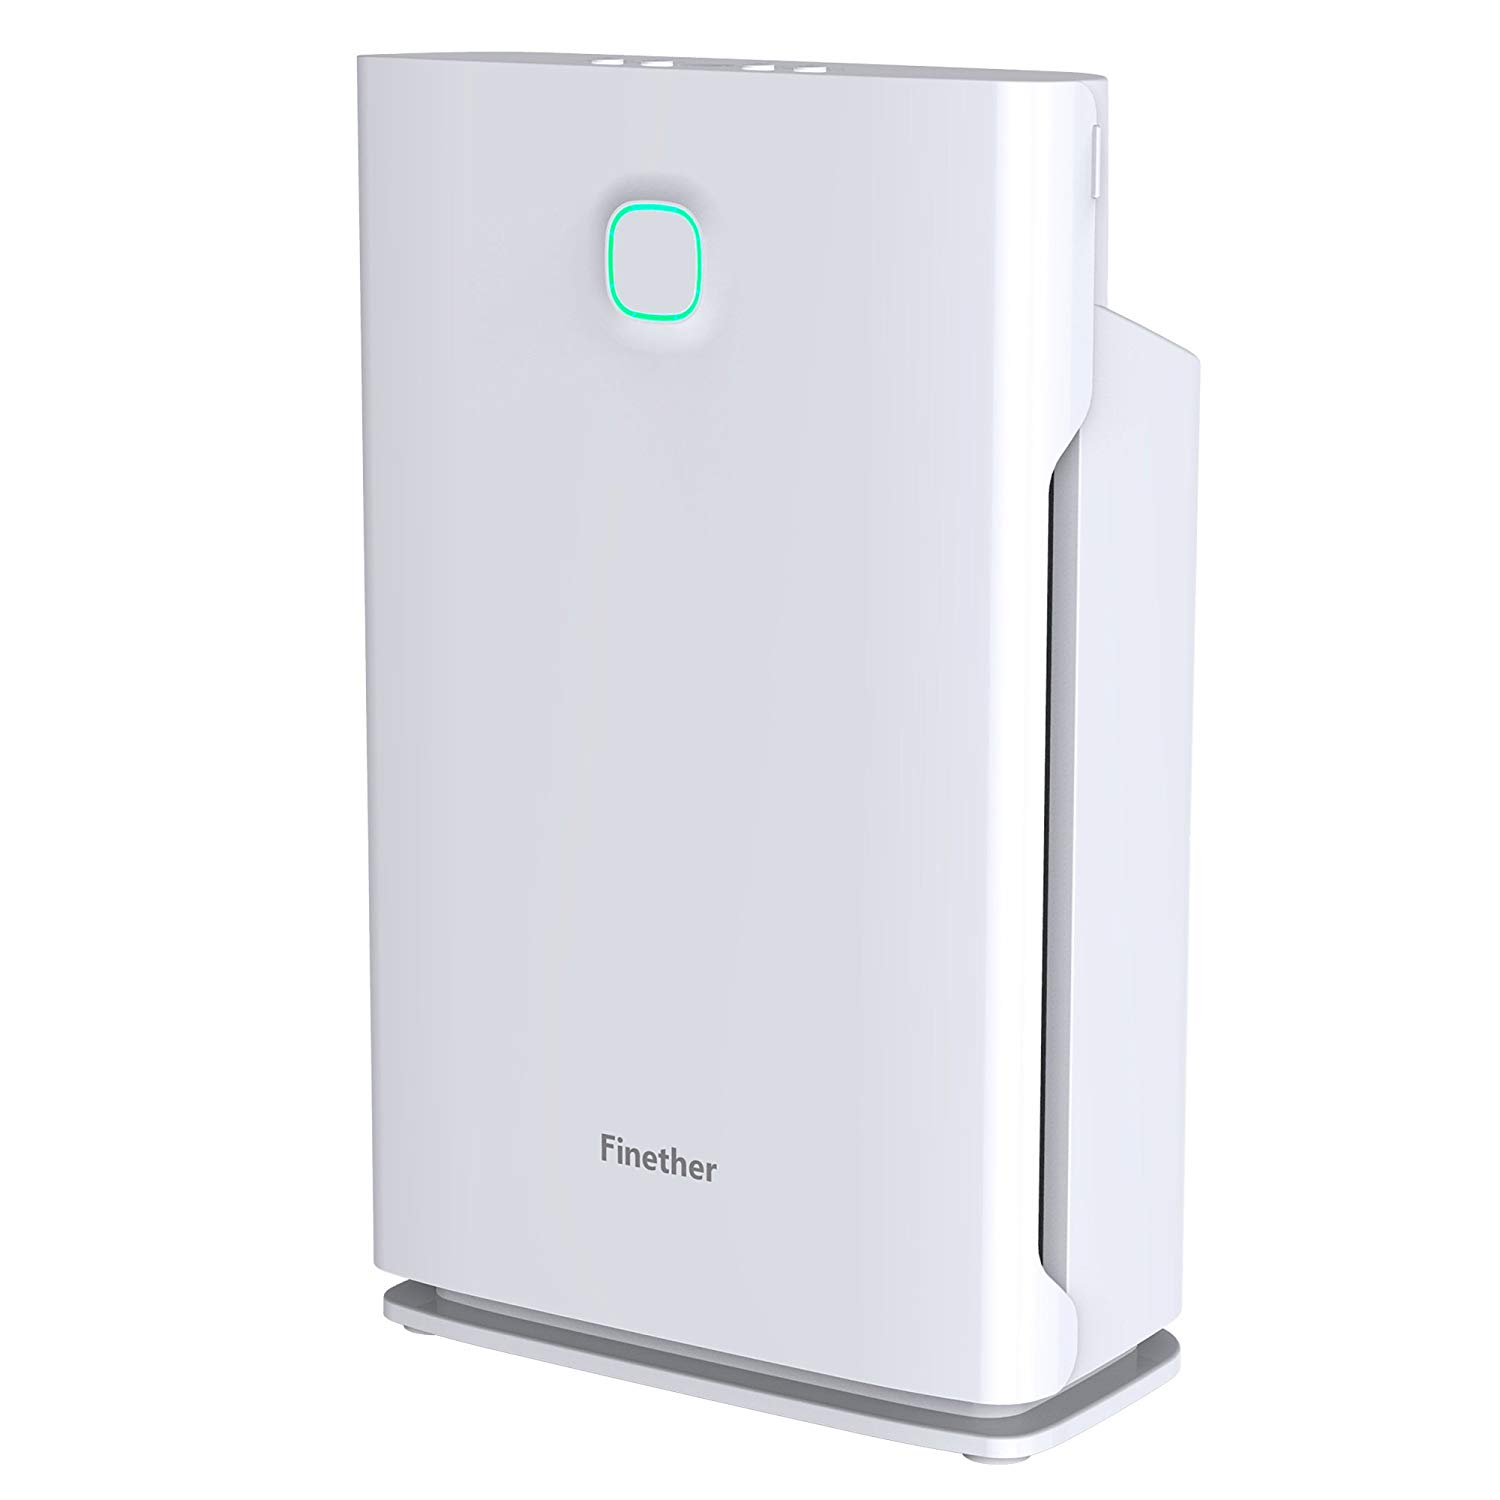 Finether Large Air Purifier Hepa Air Cleaner